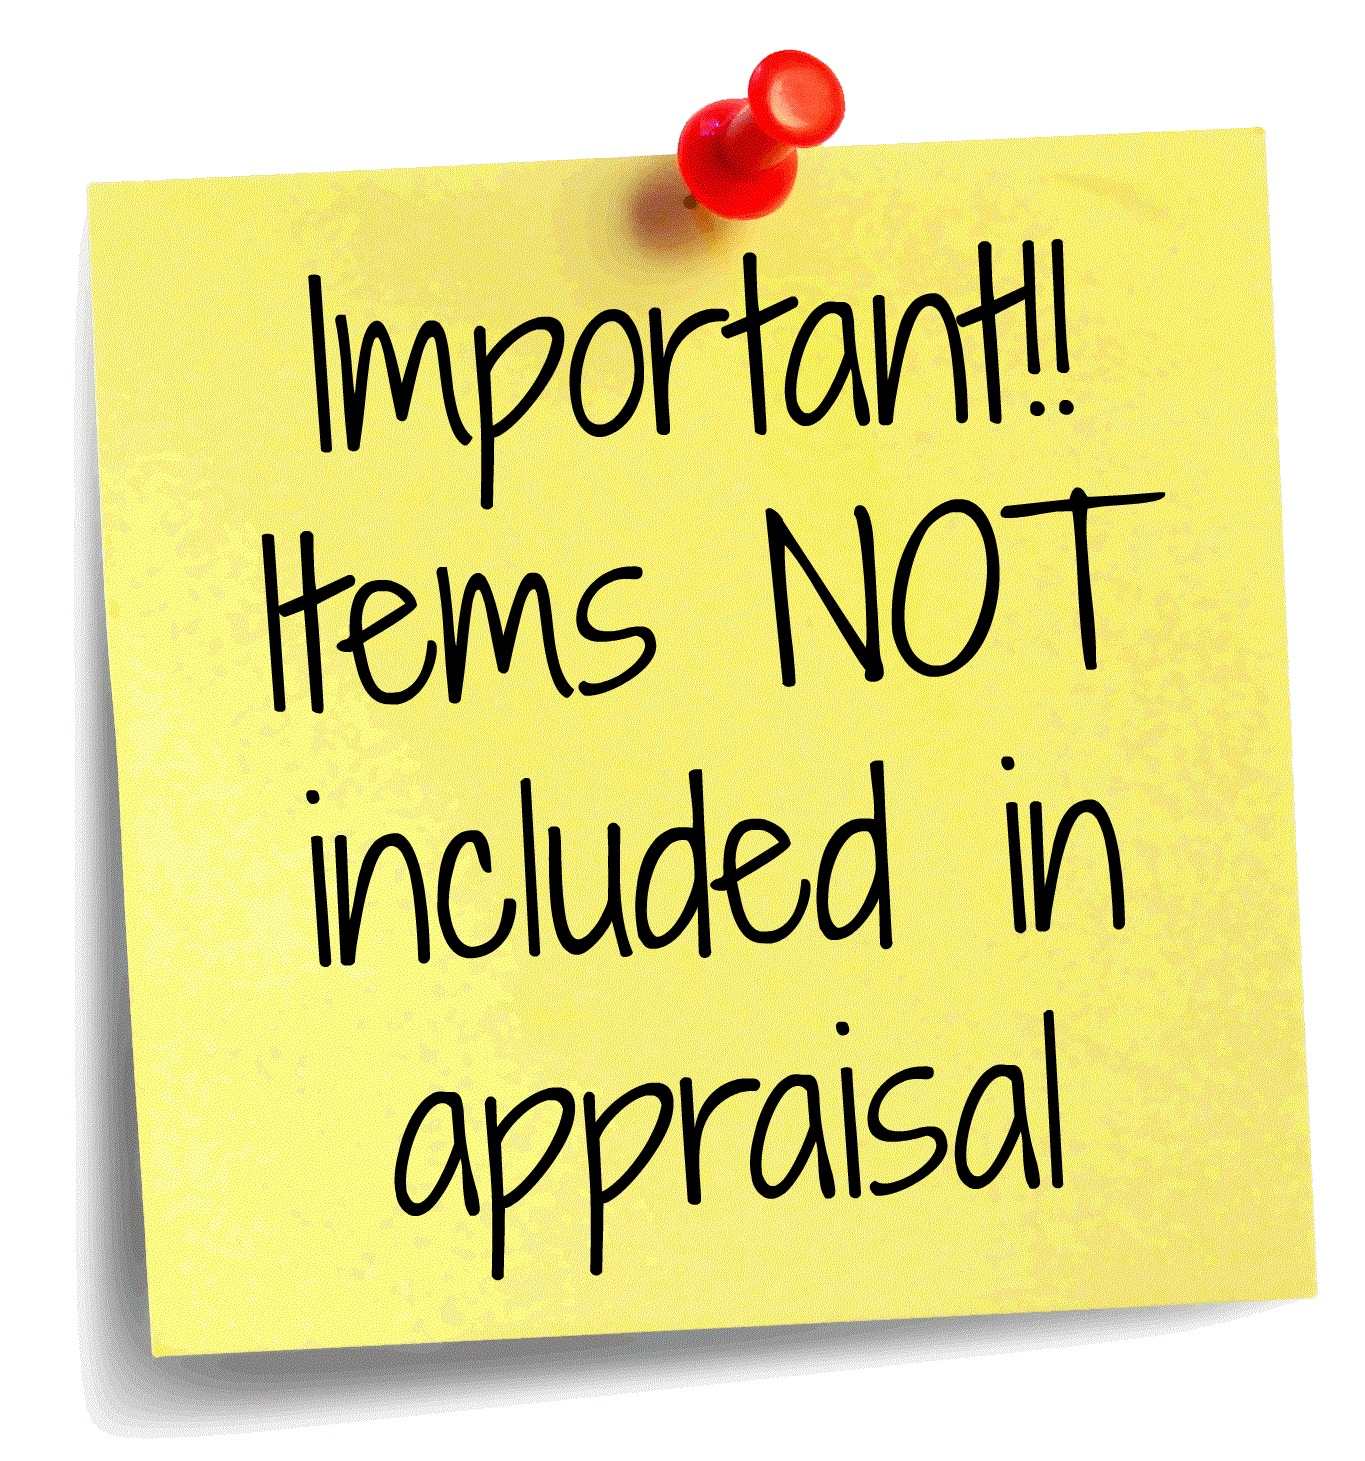 Items not included in appraisal